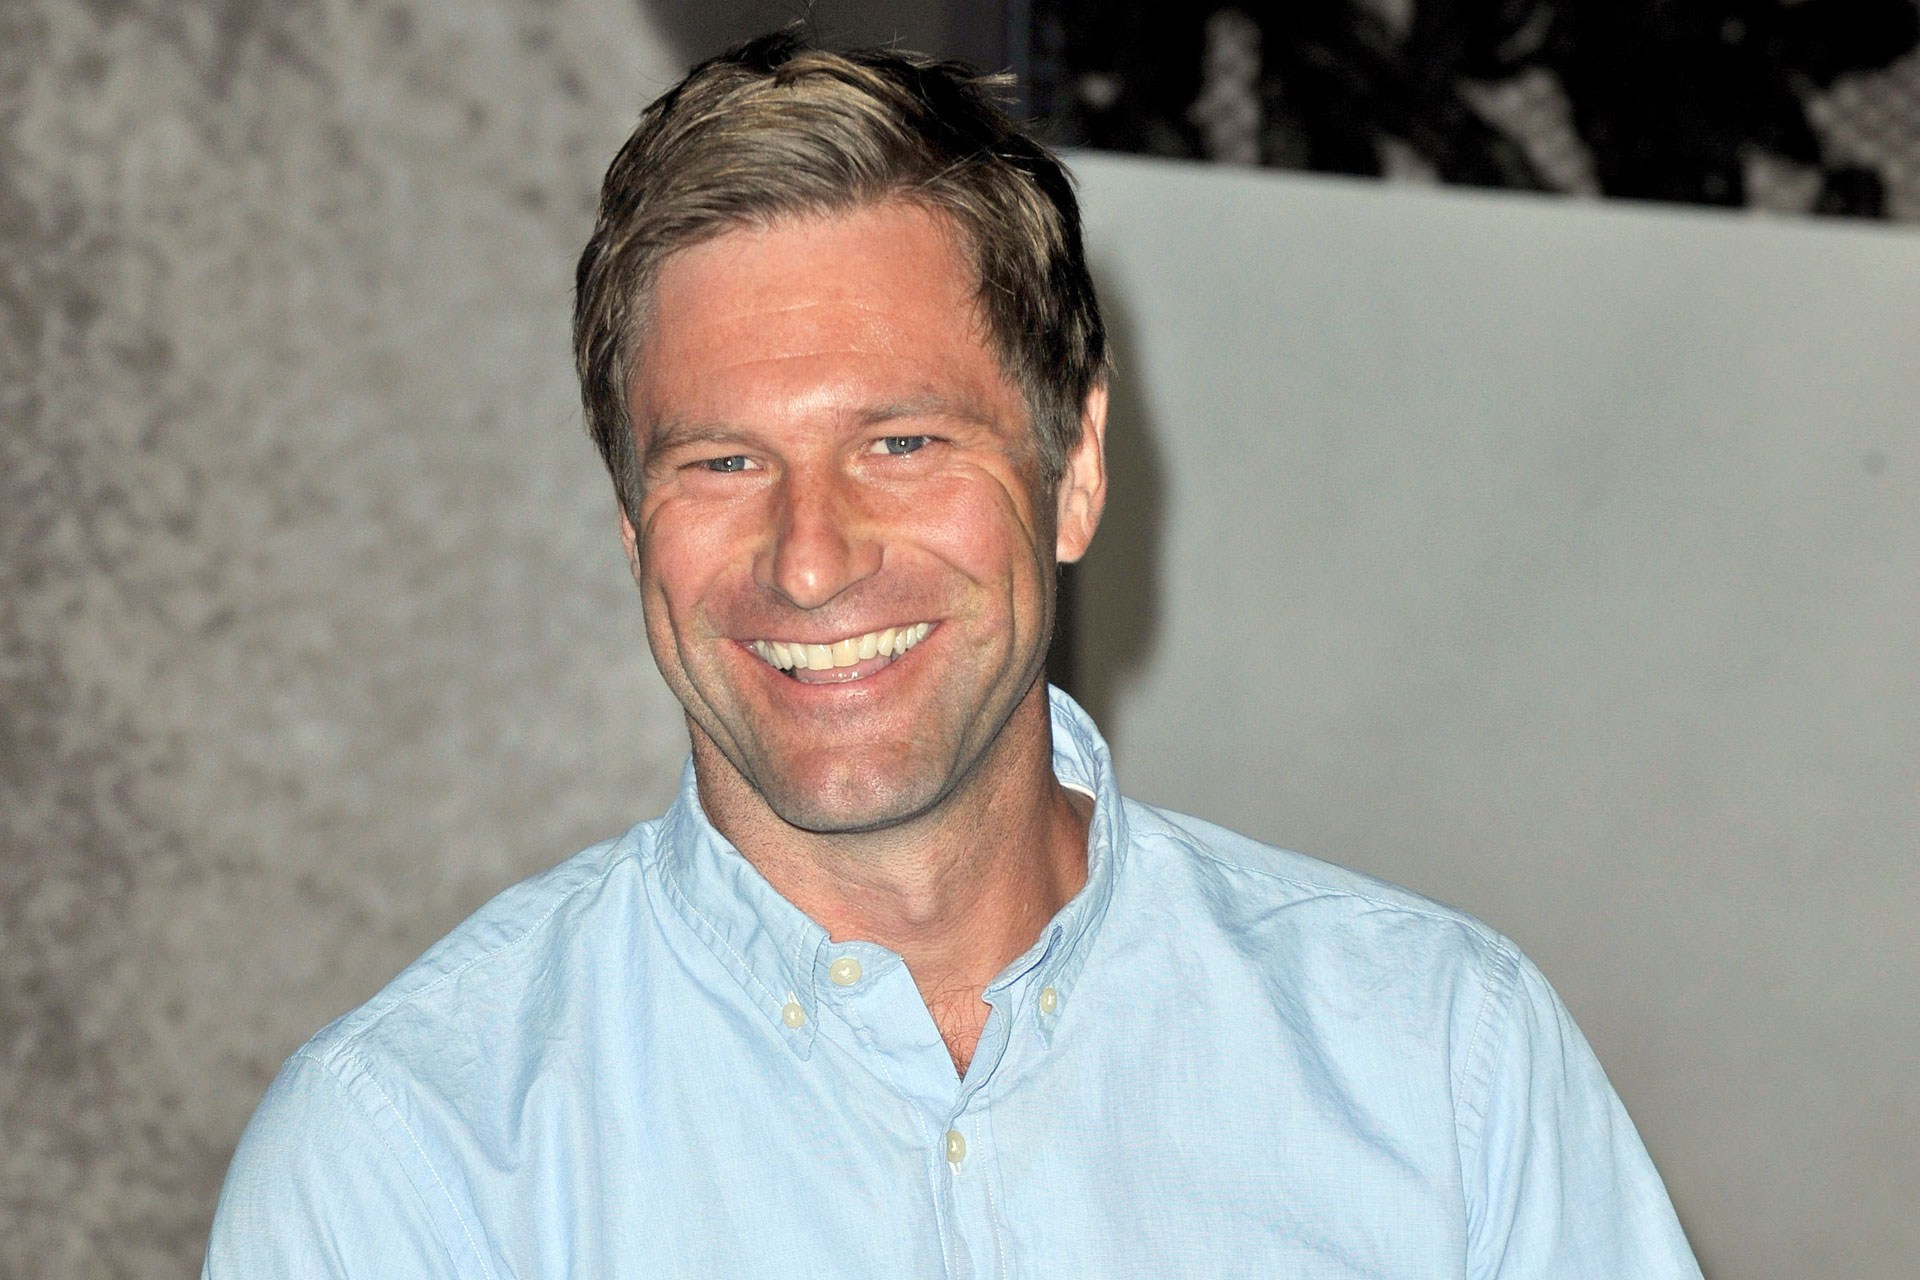 HQ Aaron Eckhart Wallpapers | File 407.41Kb